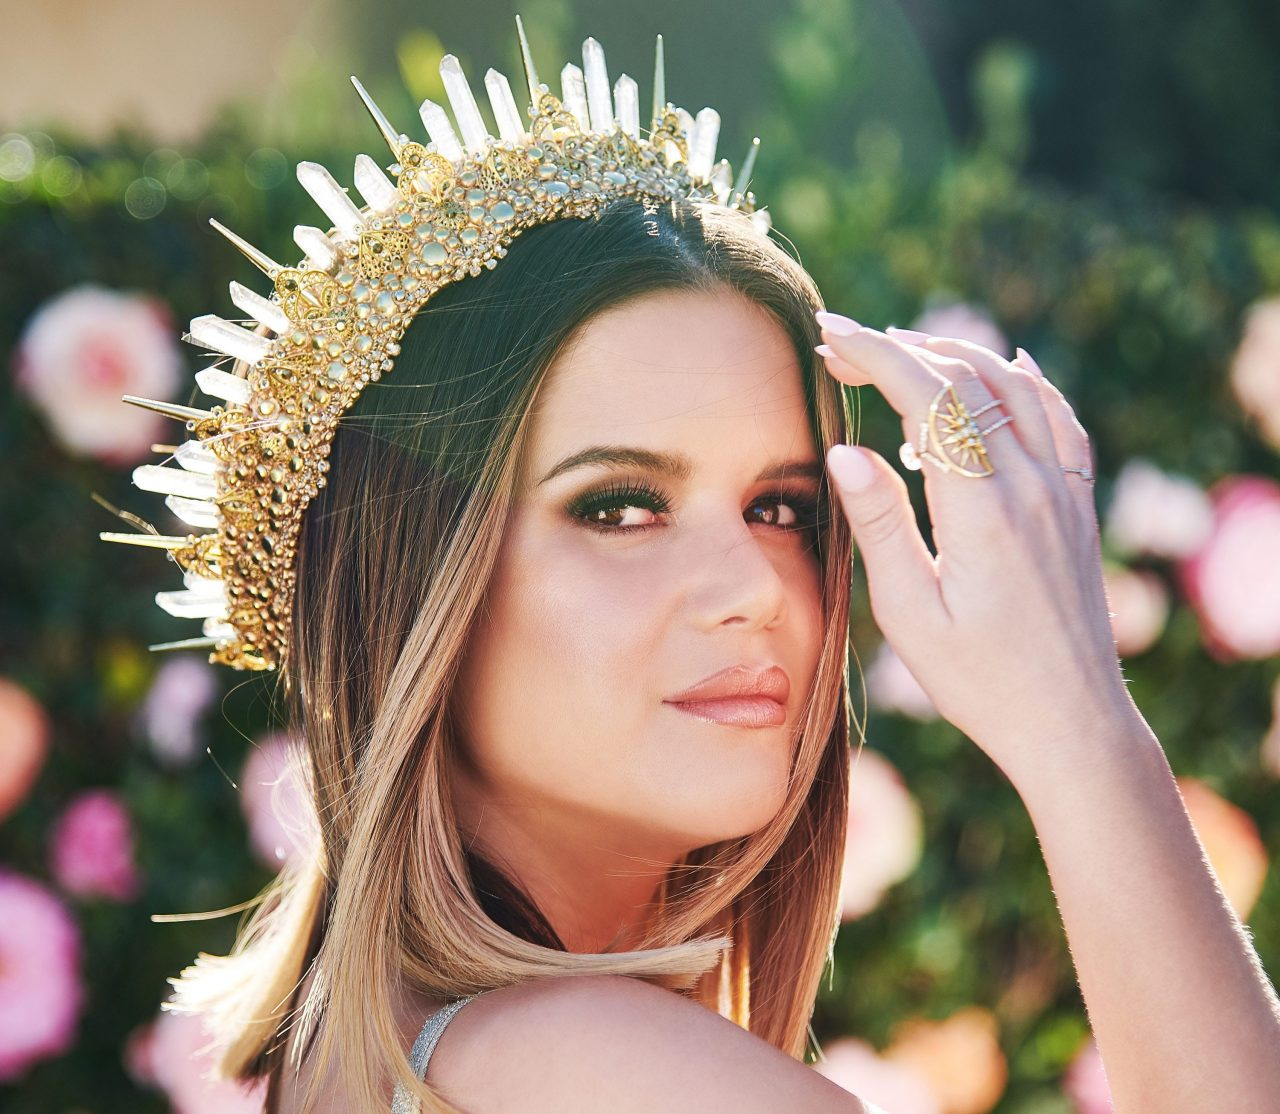 Album Review: Maren Morris' 'Girl'